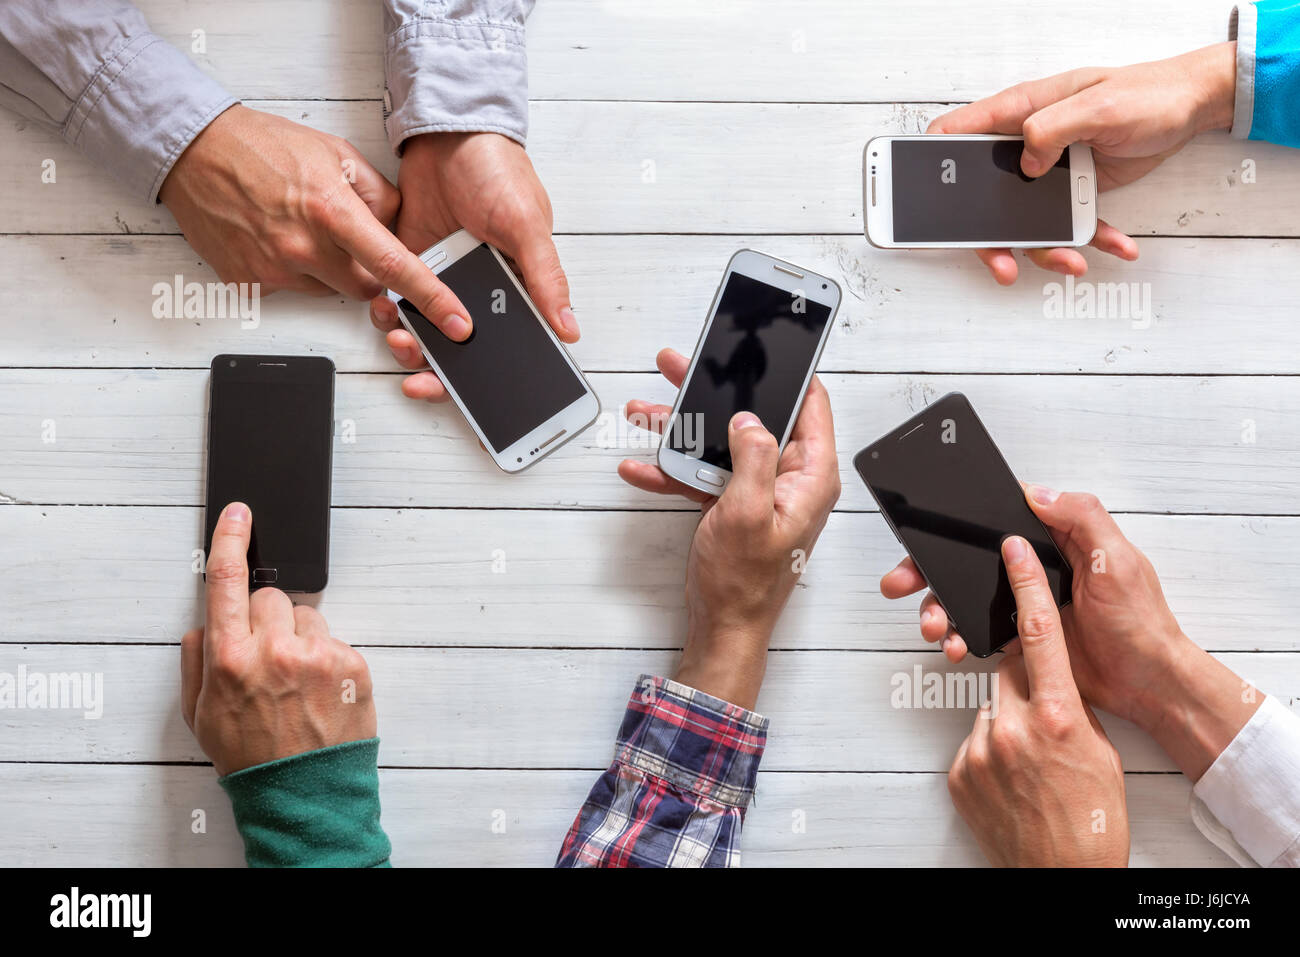 Mobile phones in friends hand closeup. Network addicted concept - Stock Image